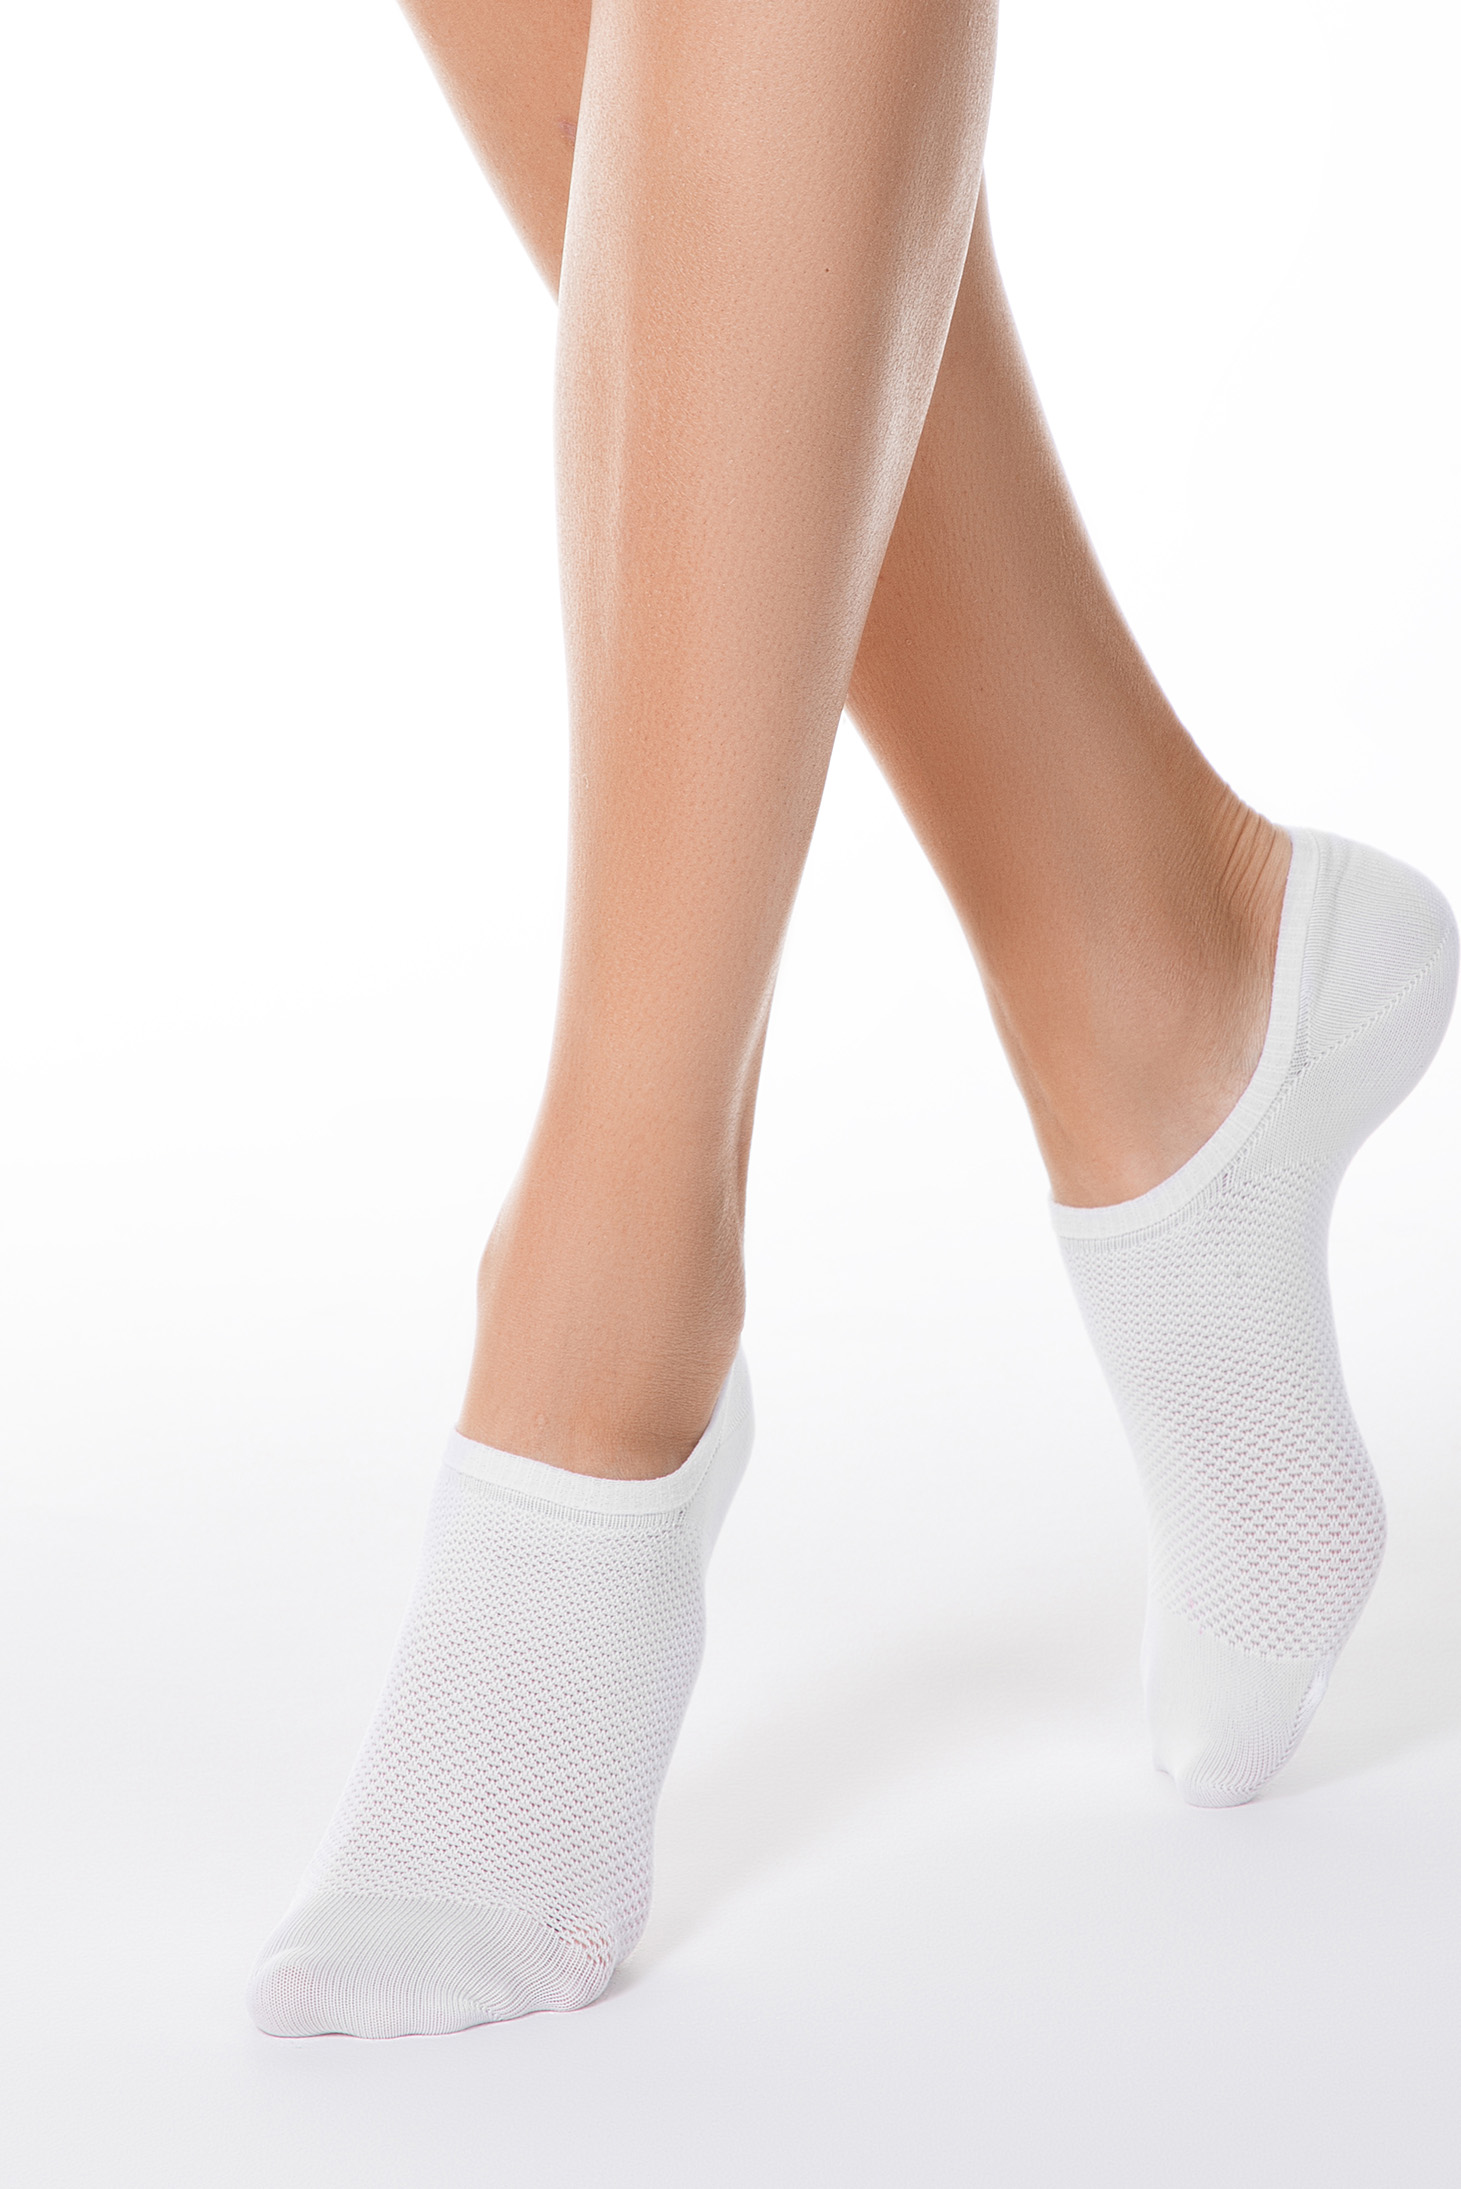 White socks from elastic fabric net stockings fitted heel